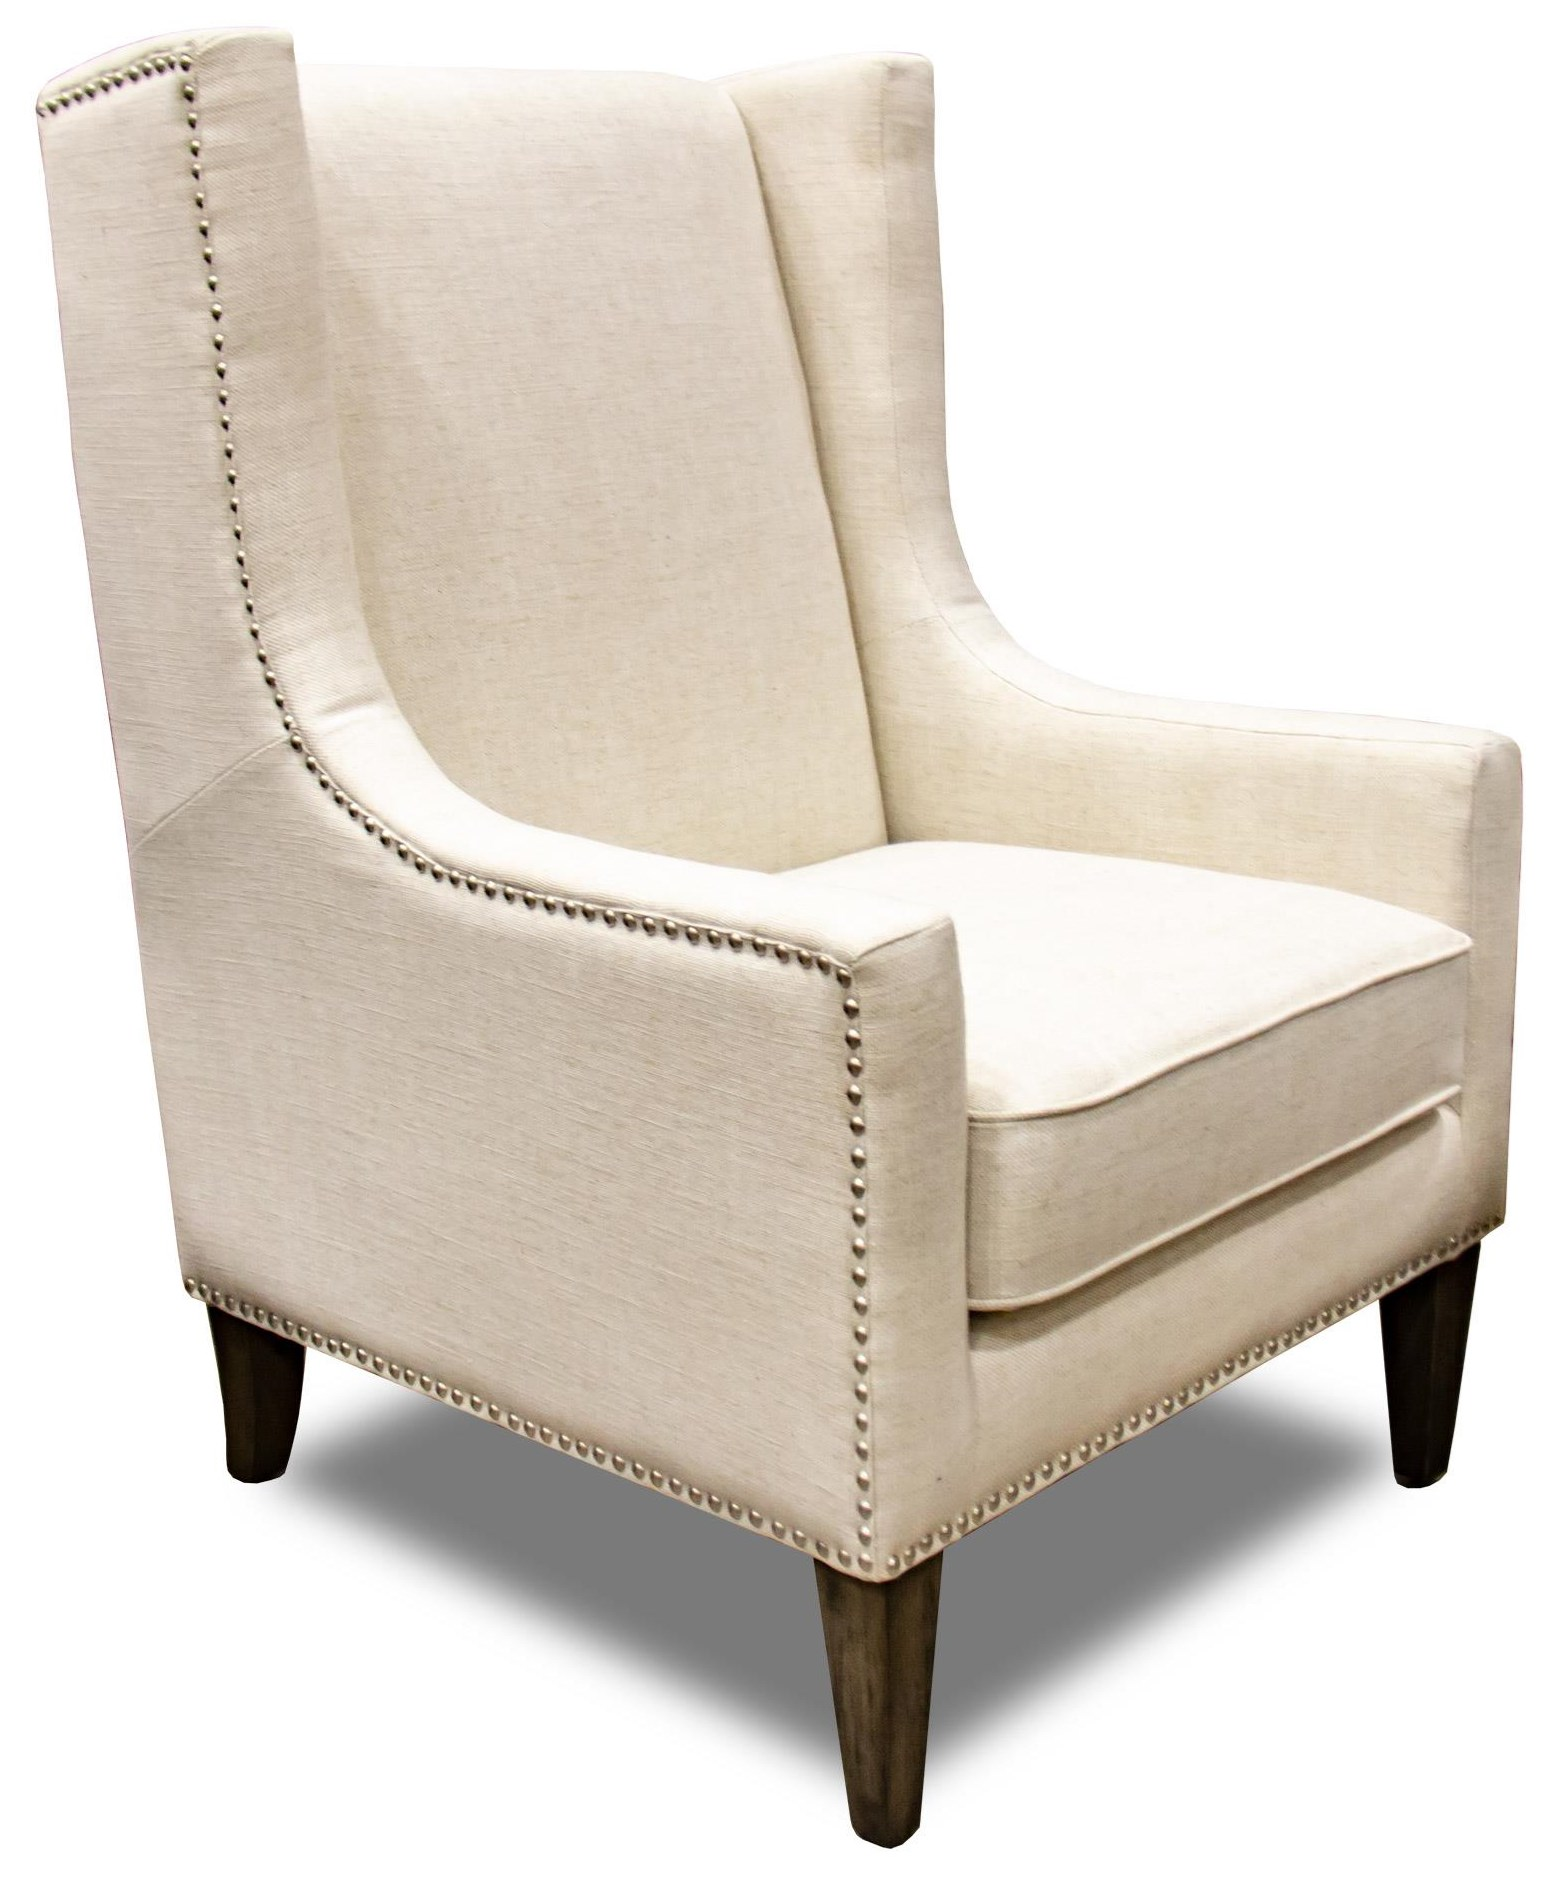 Villa Home Collection Erie Club Chair Erie Ivory Club Chair - Item Number: 53051053